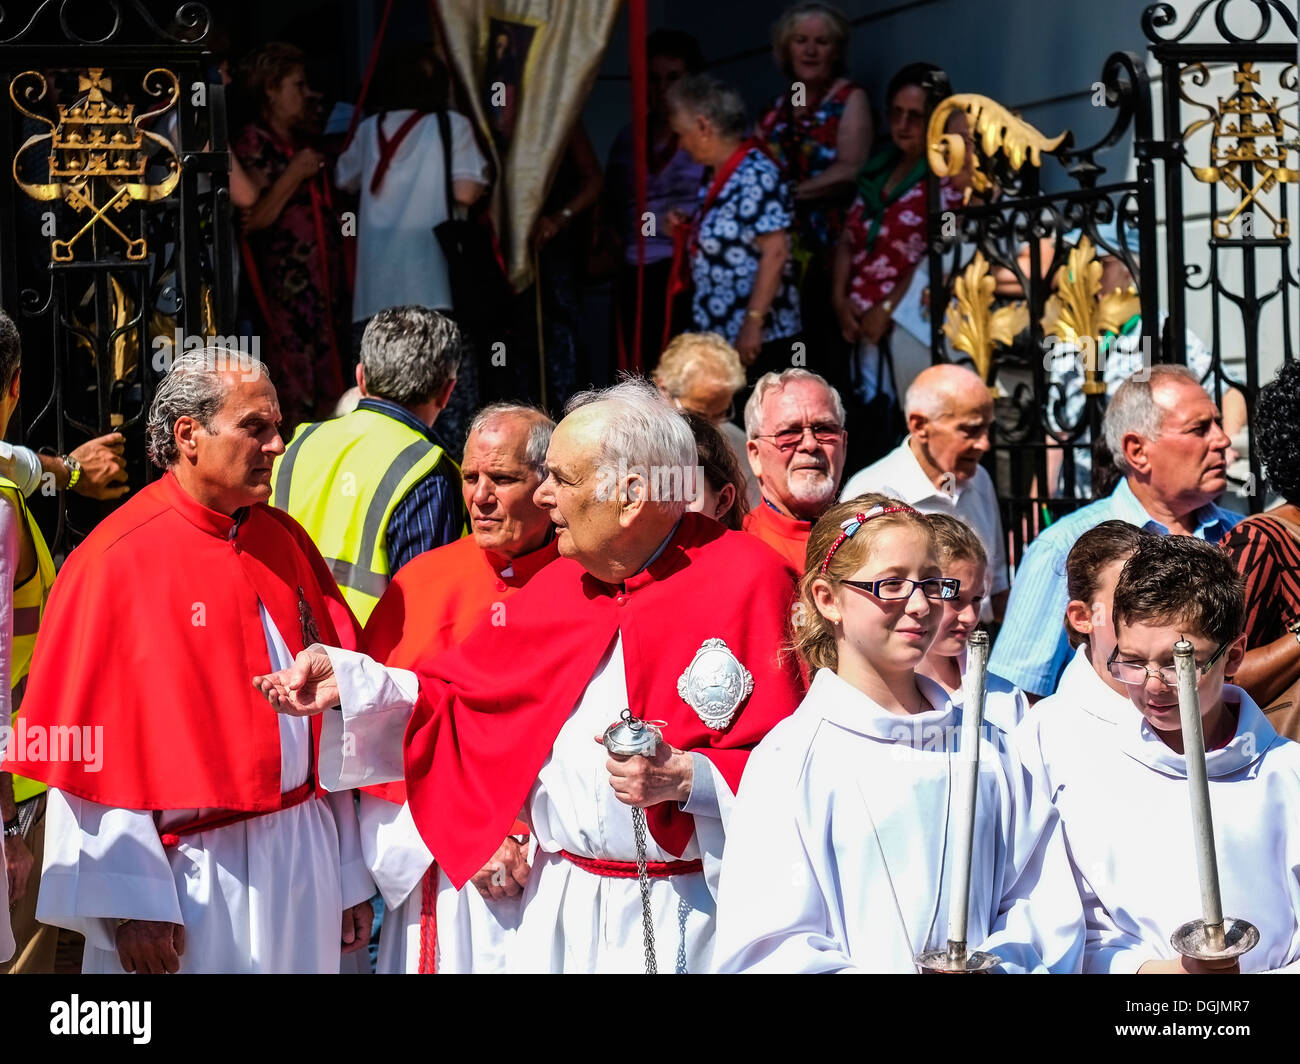 Church officials waiting for the start of the annual Procession in Honour of Our Lady of Mount Carmel. - Stock Image